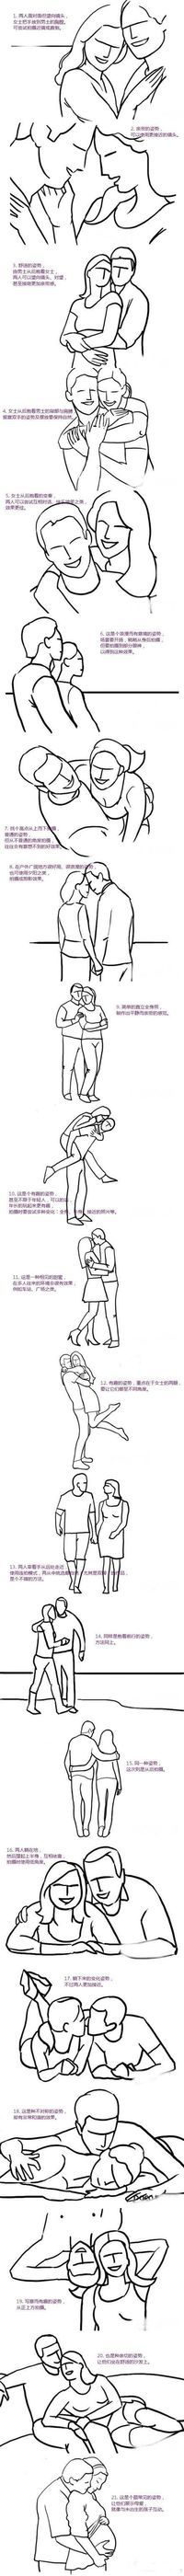 Engagement Pose Ideas for Couples excuse the last one lolol. I like the piggyback ride :)